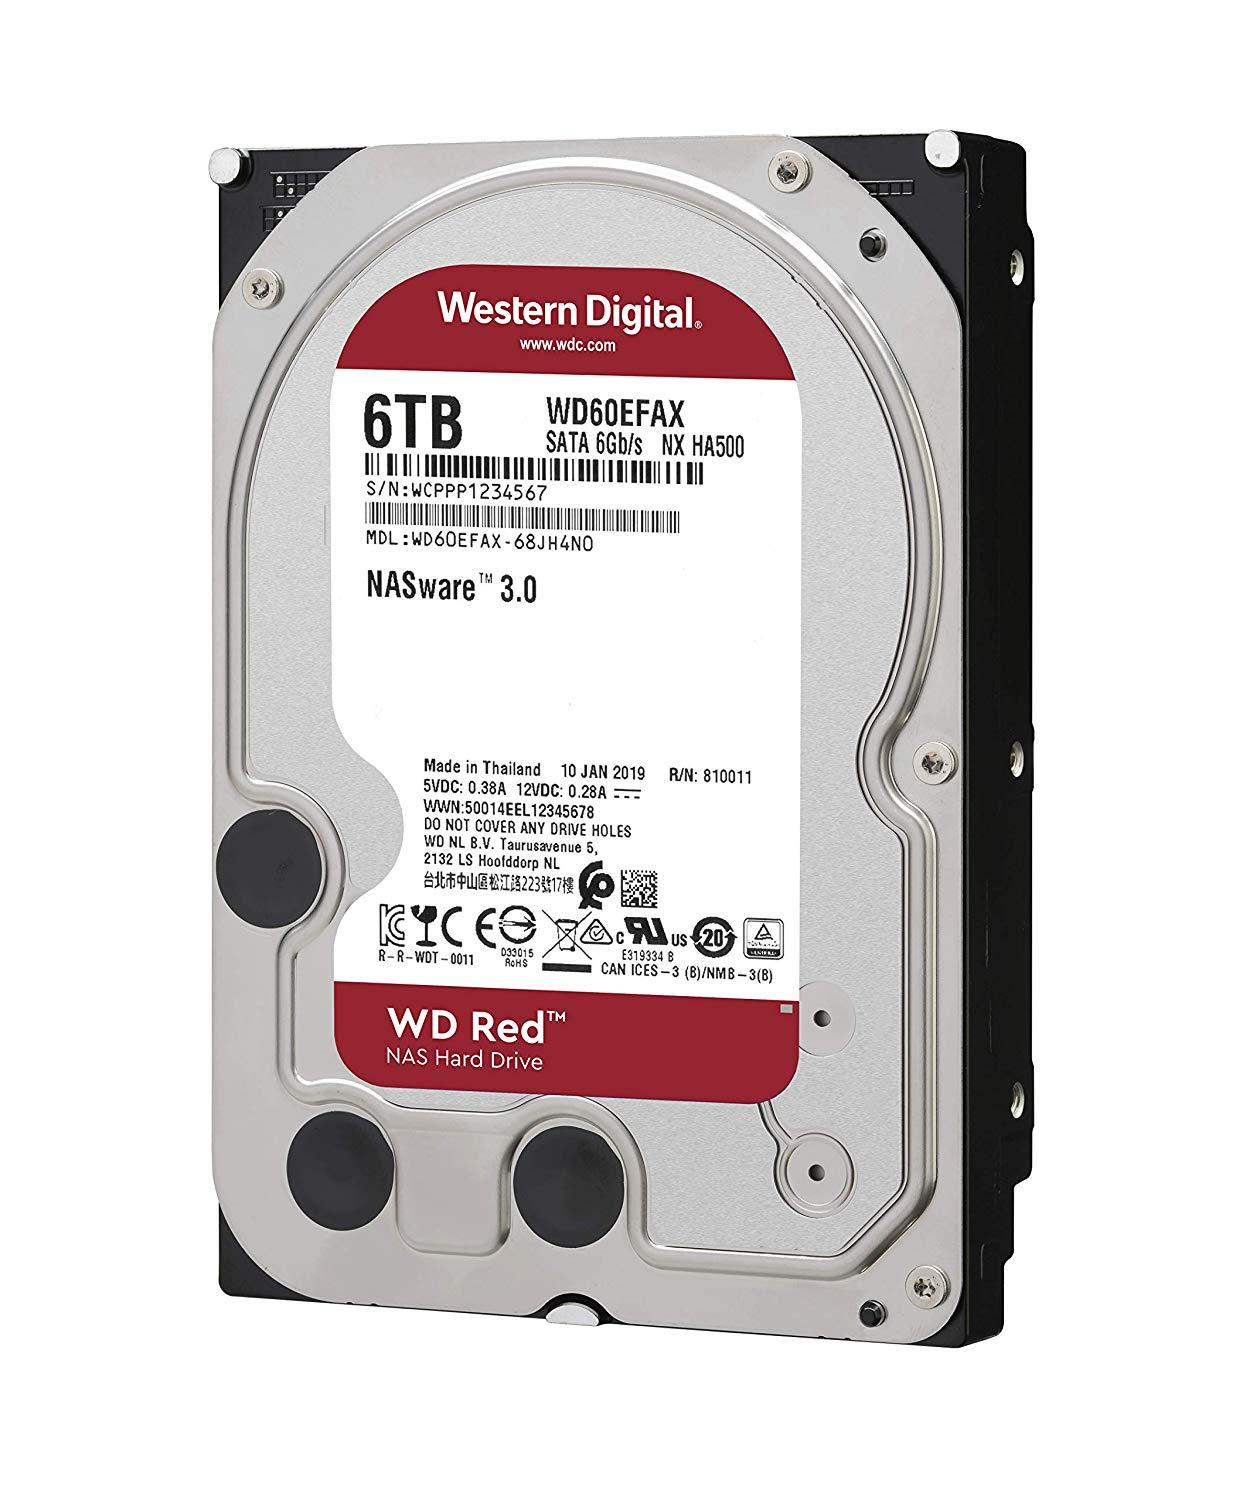 Хард диск WD RED, 6TB, 5400rpm, 256MB, SATA 3, WD60EFAX